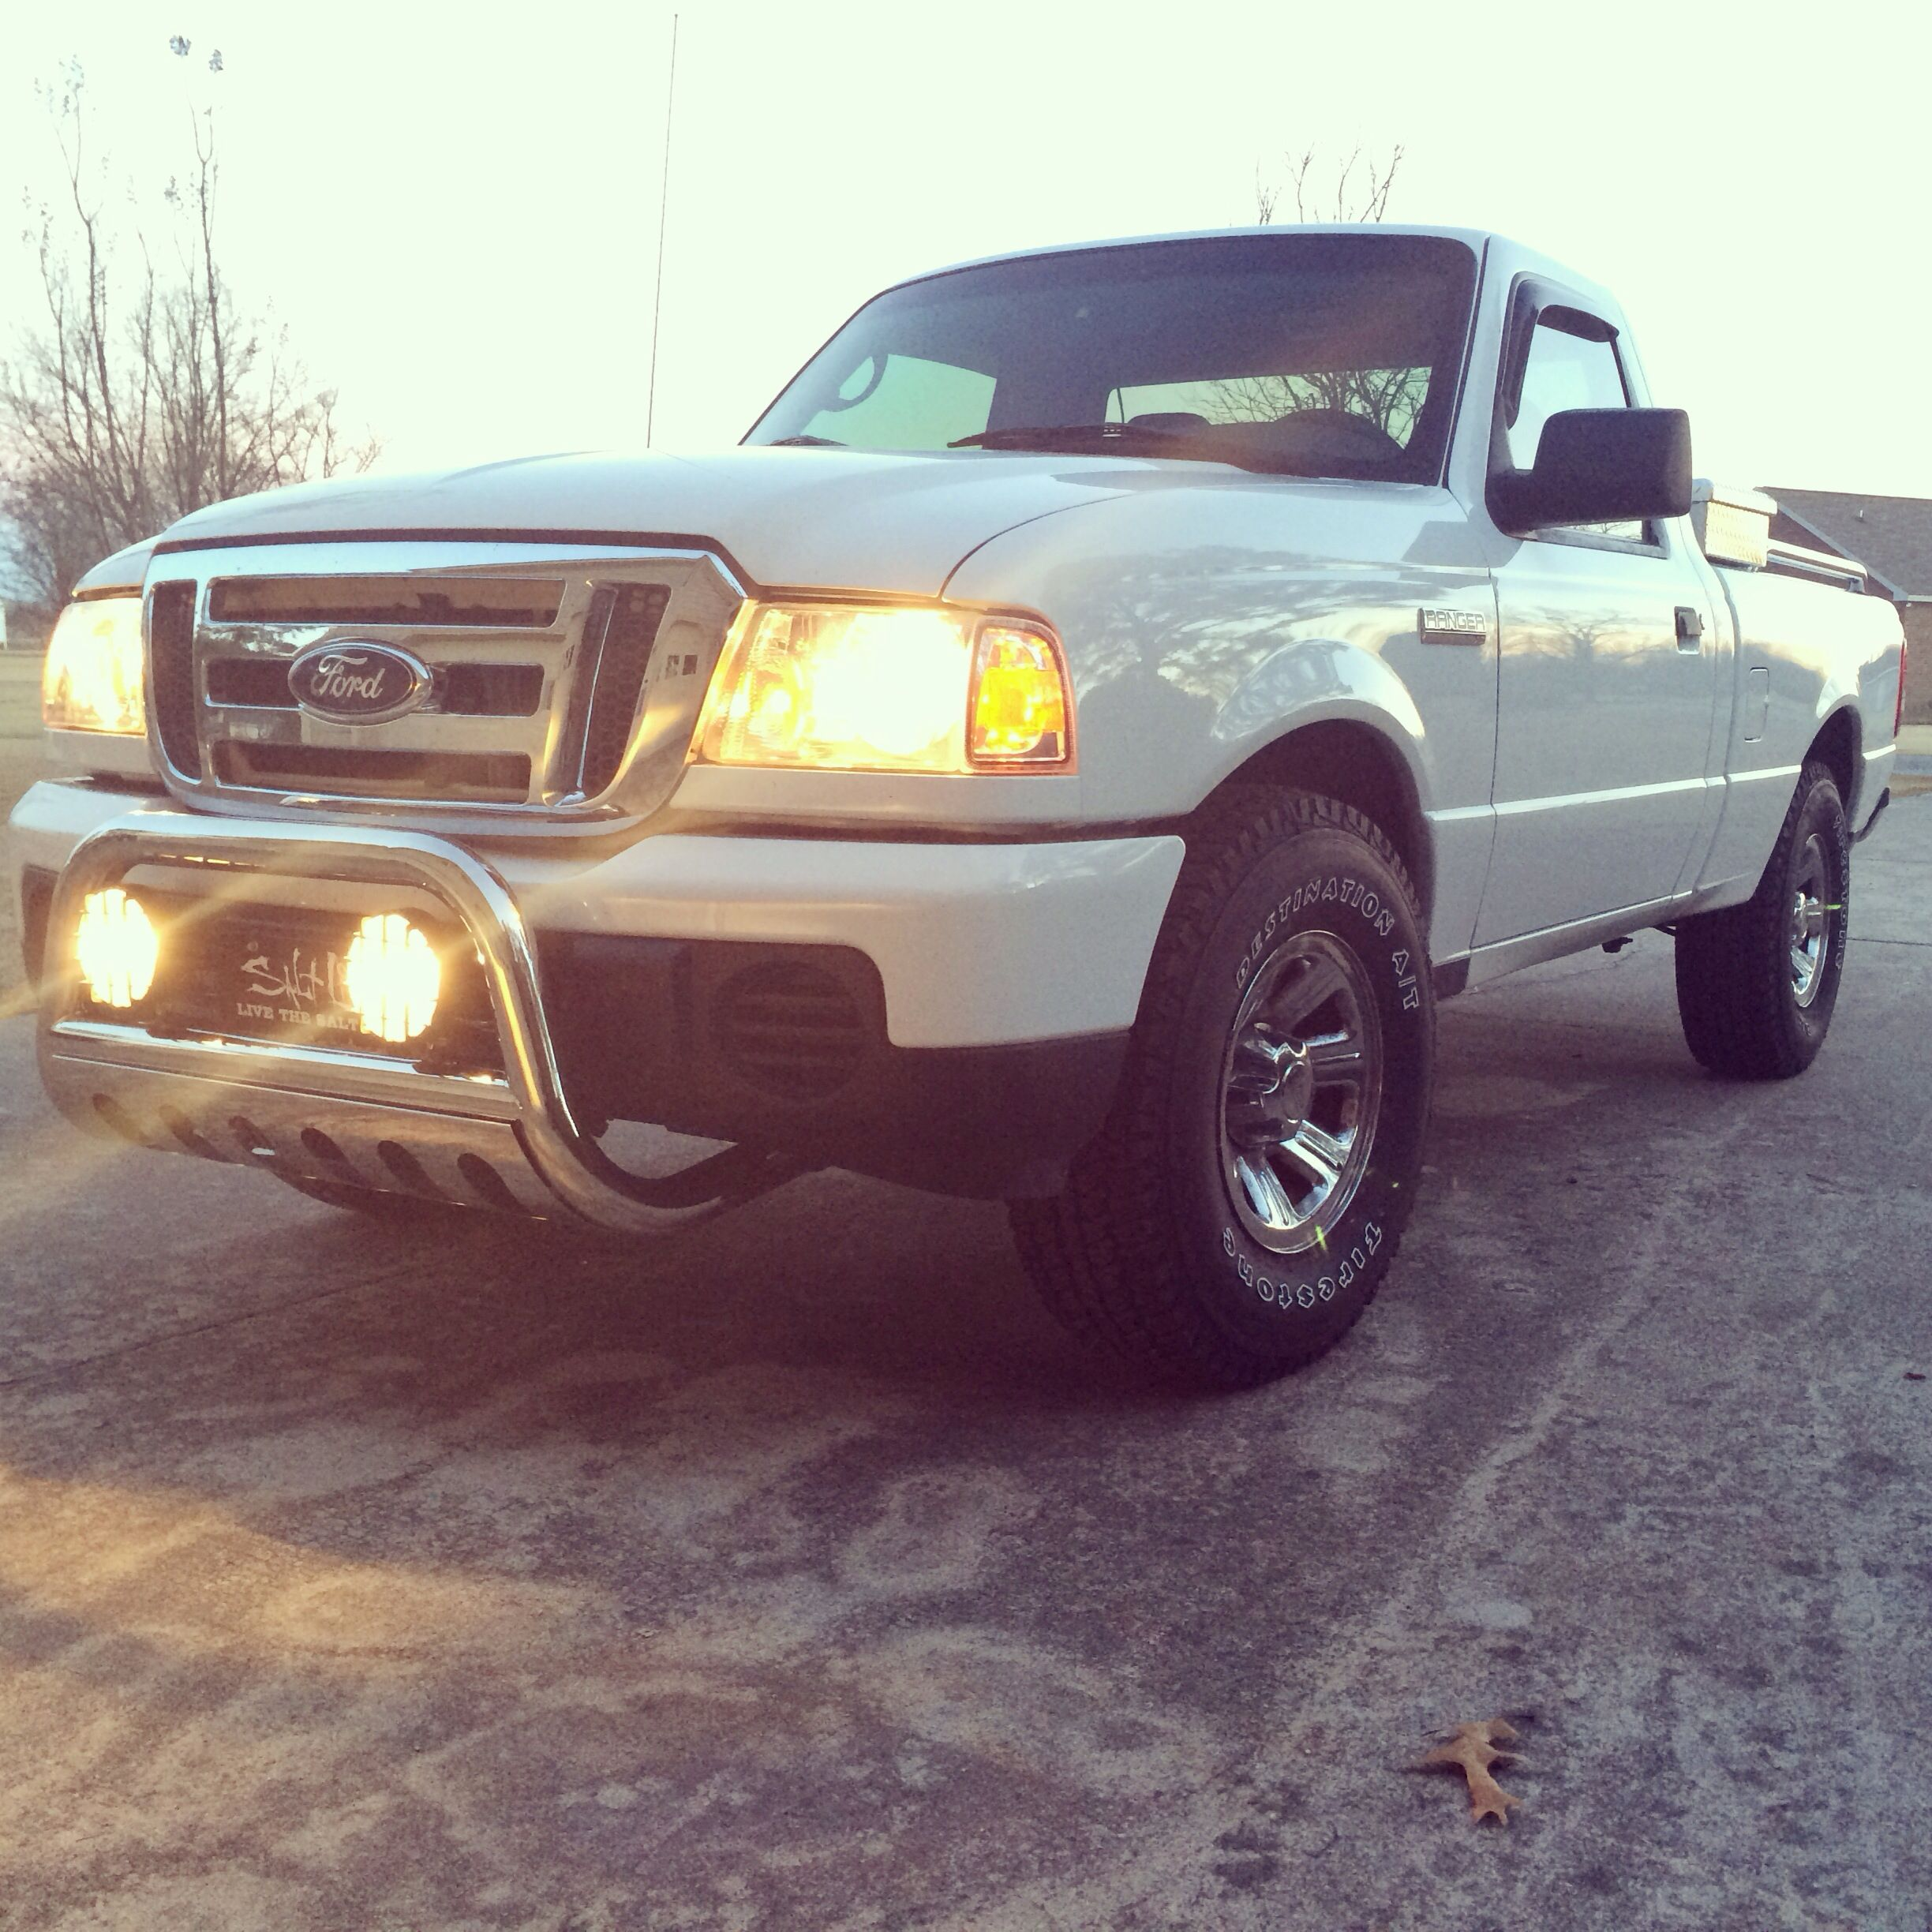 Ford ranger. No lift. 31' tires. Bullbar with lights.